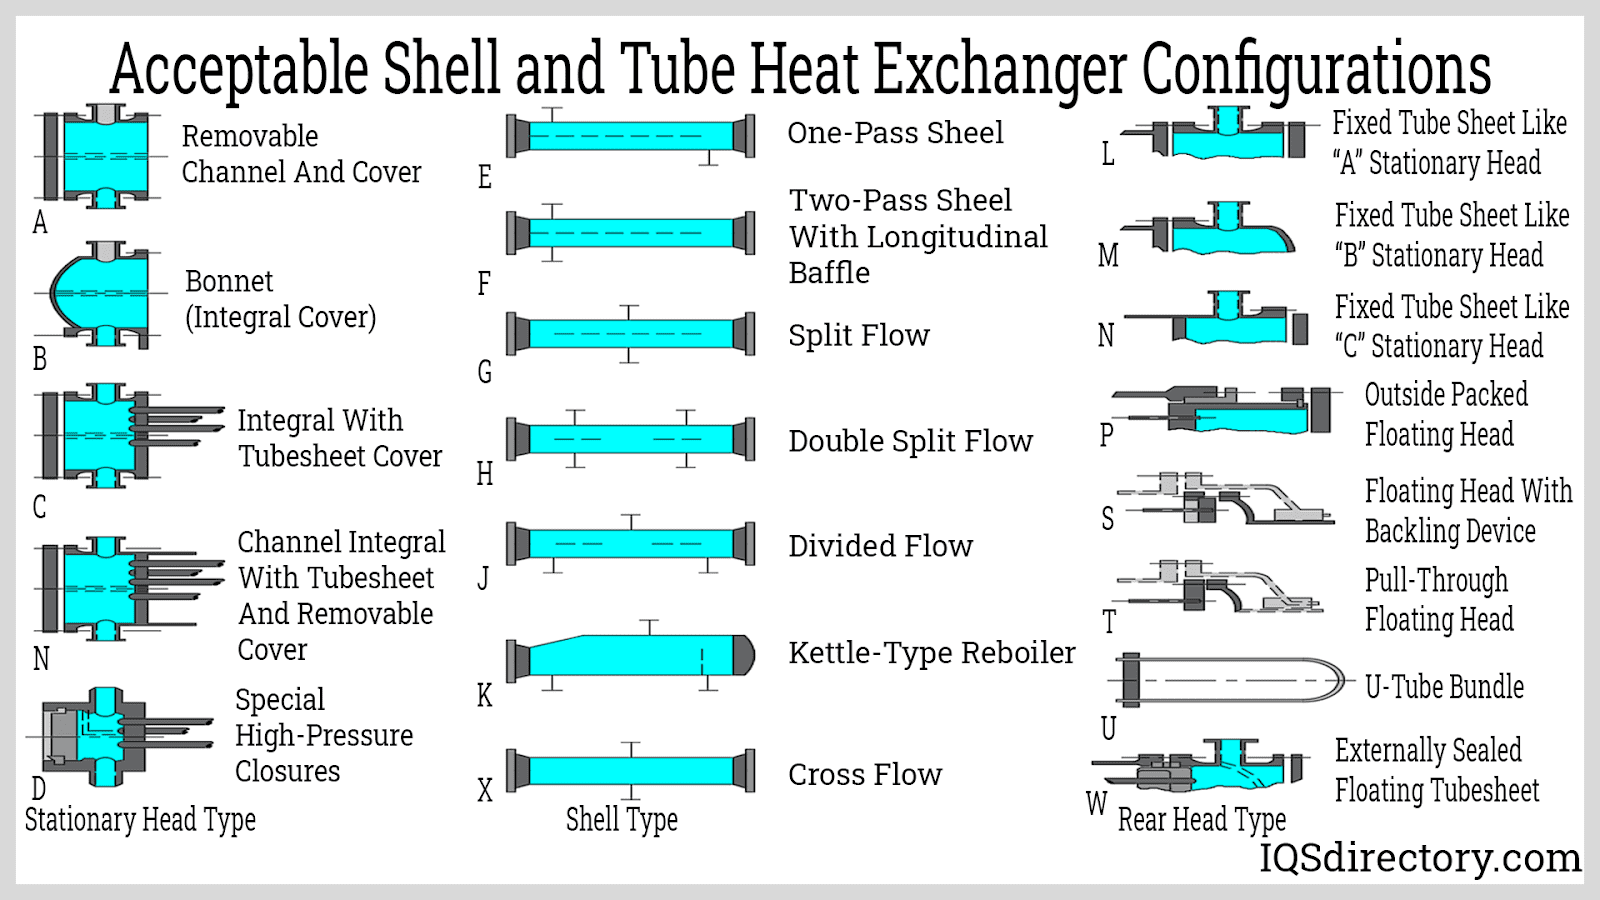 Acceptable Shell and Tube Heat Exchanger Configurations